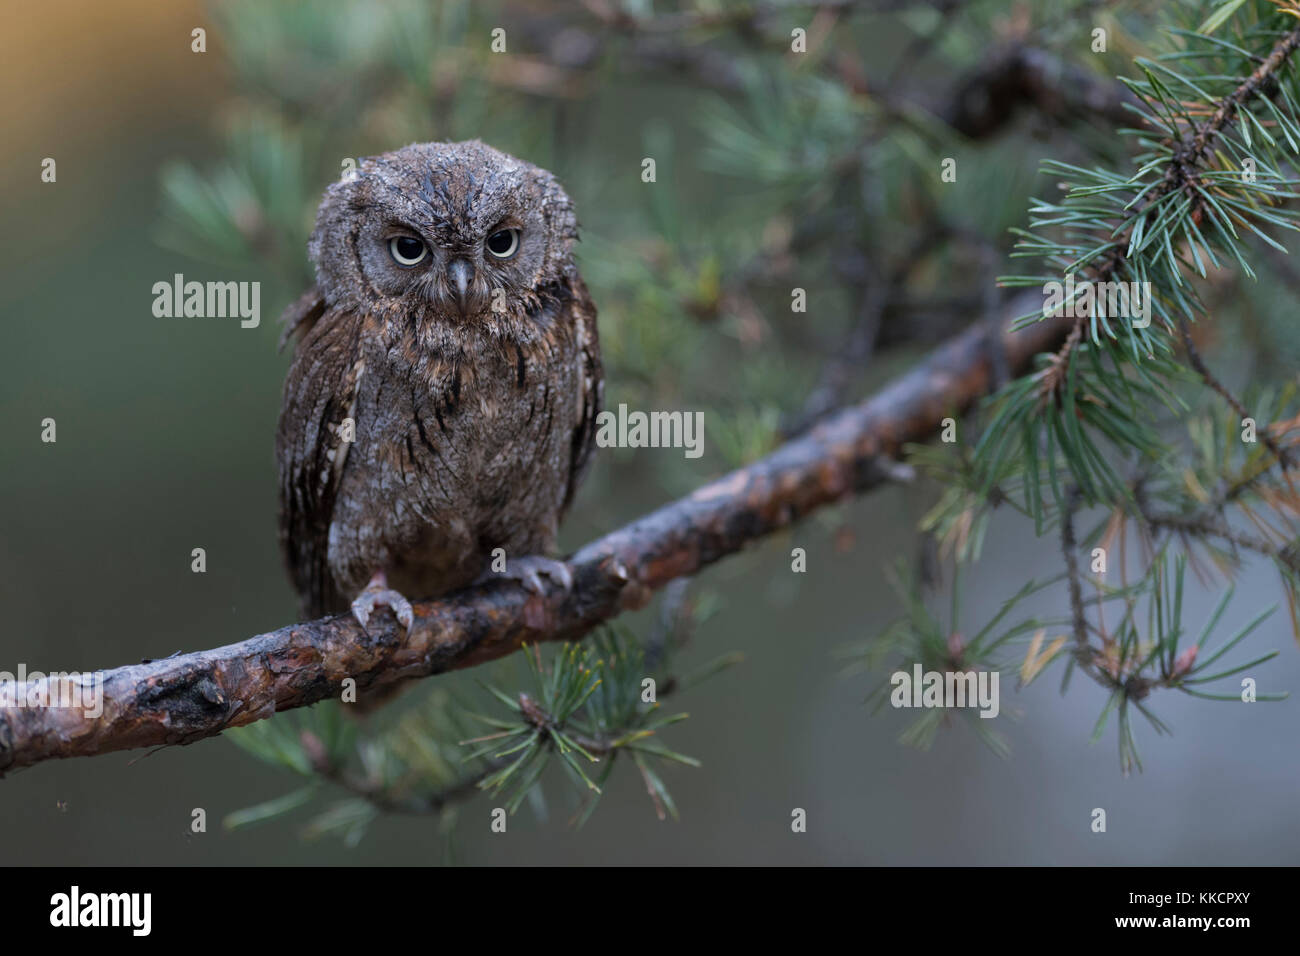 Scops Owl / Zwergohreule ( Otus scops ), perched on a branch of a pine tree, looks discontented, droll funny little - Stock Image